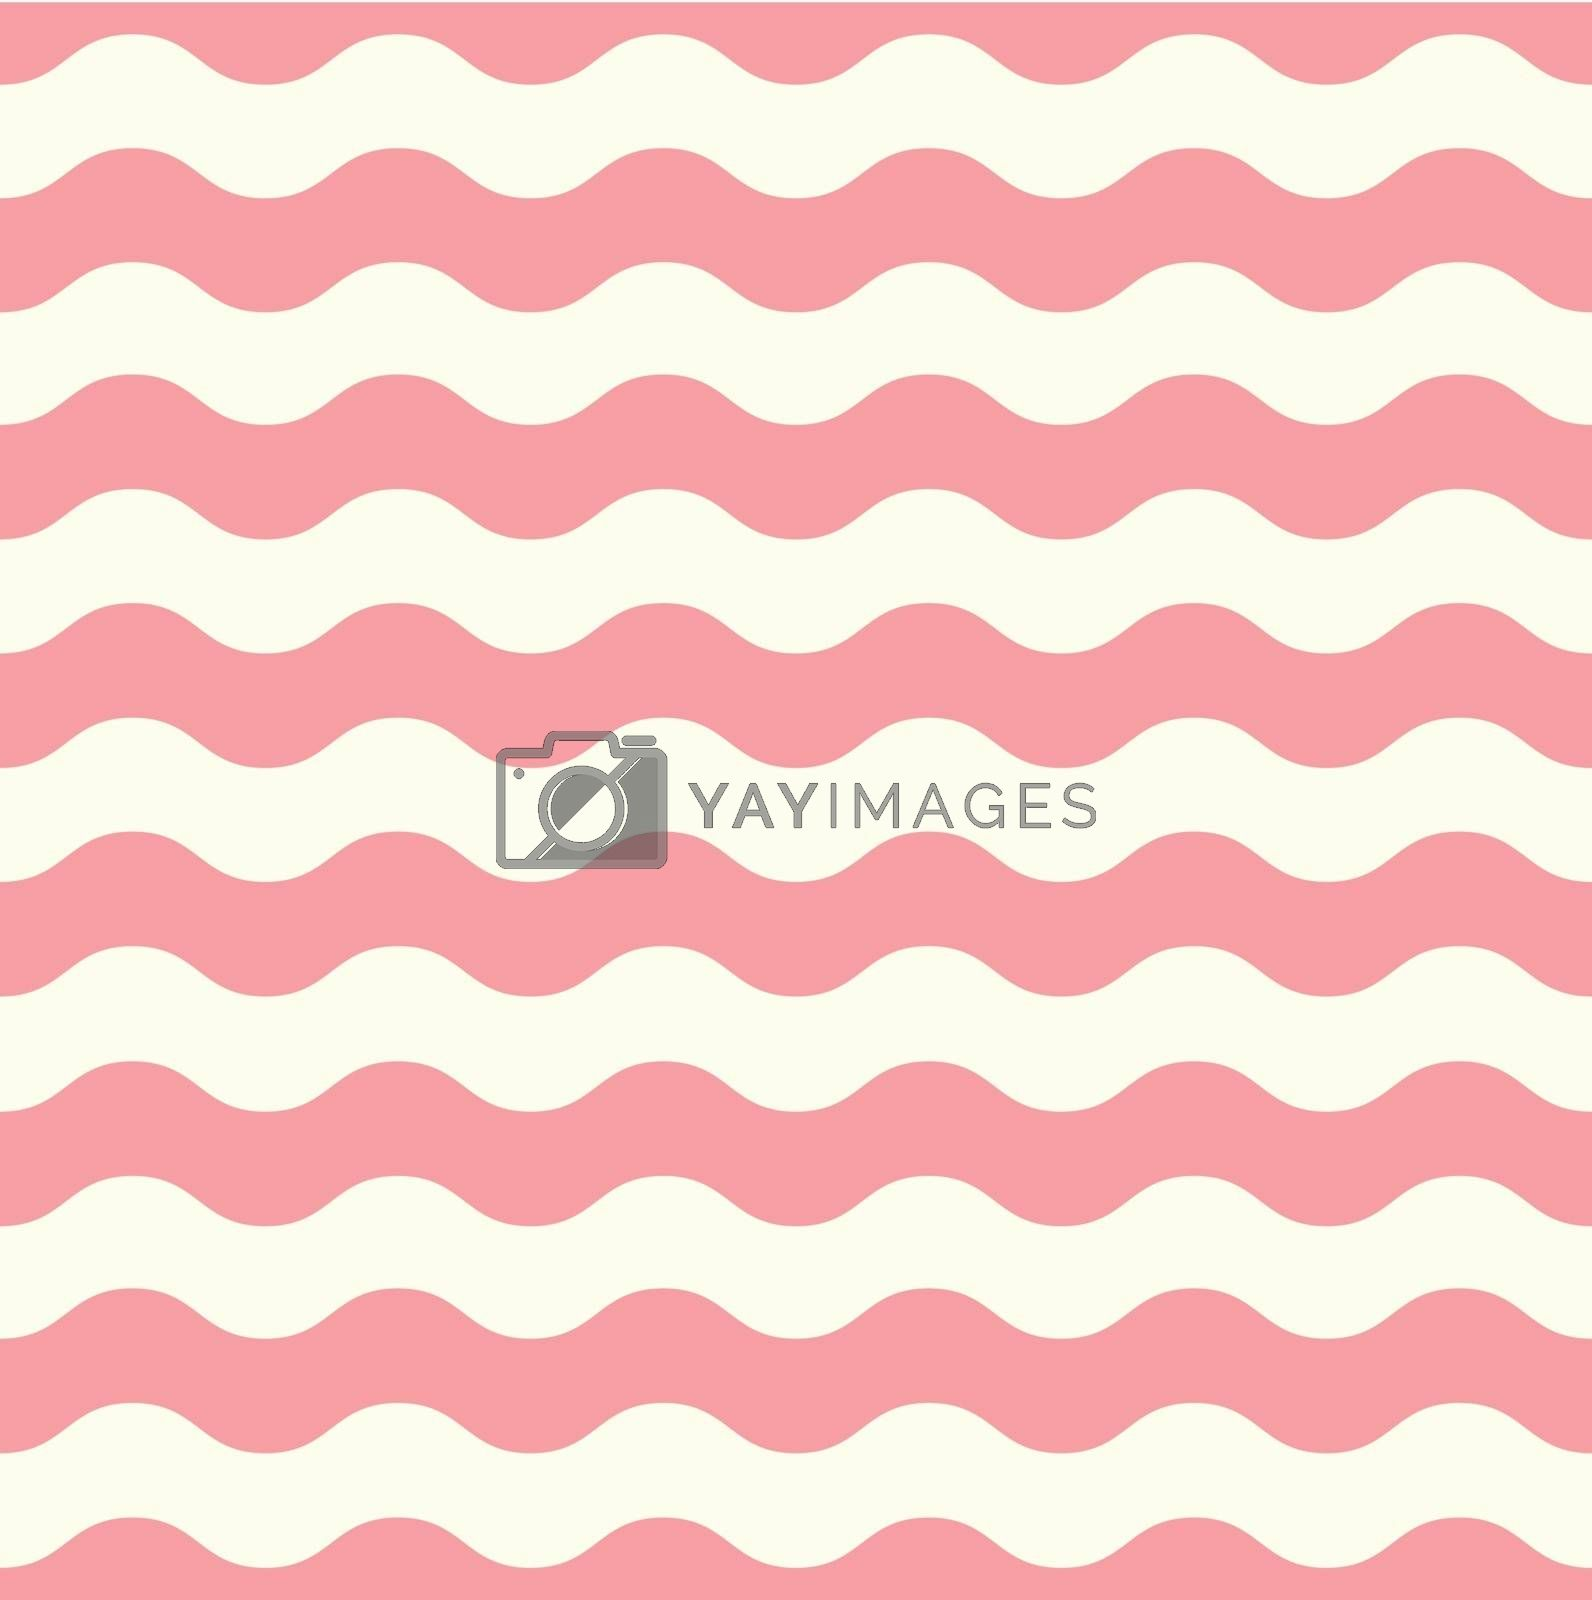 Wrapping background pattern for wedding. Vector